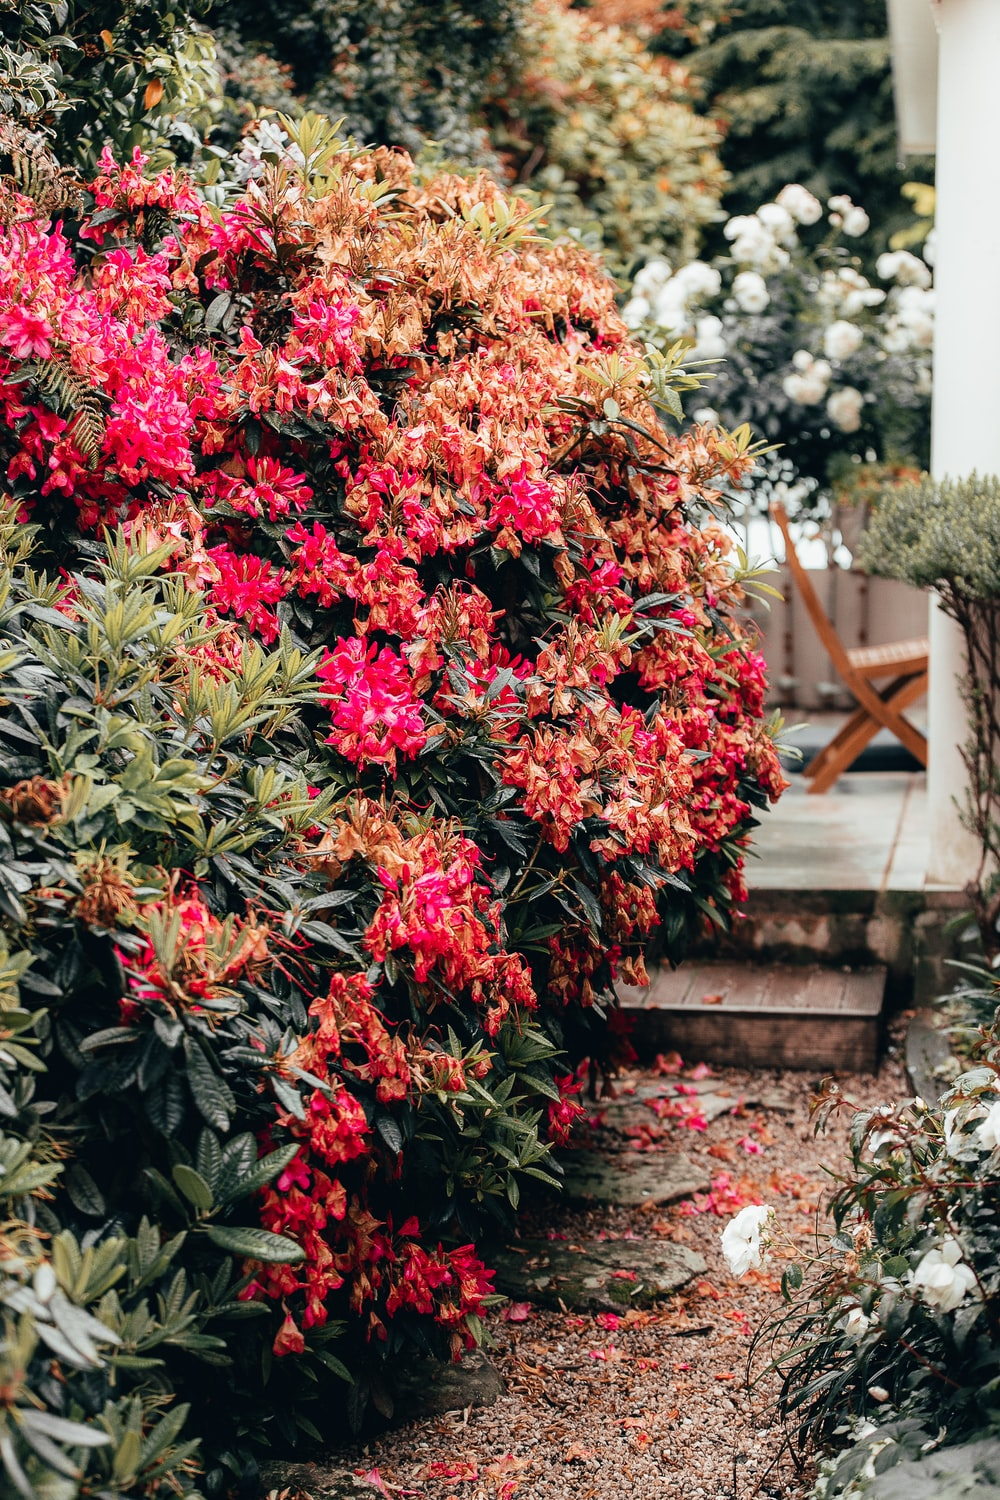 red and white flower plants during daytime